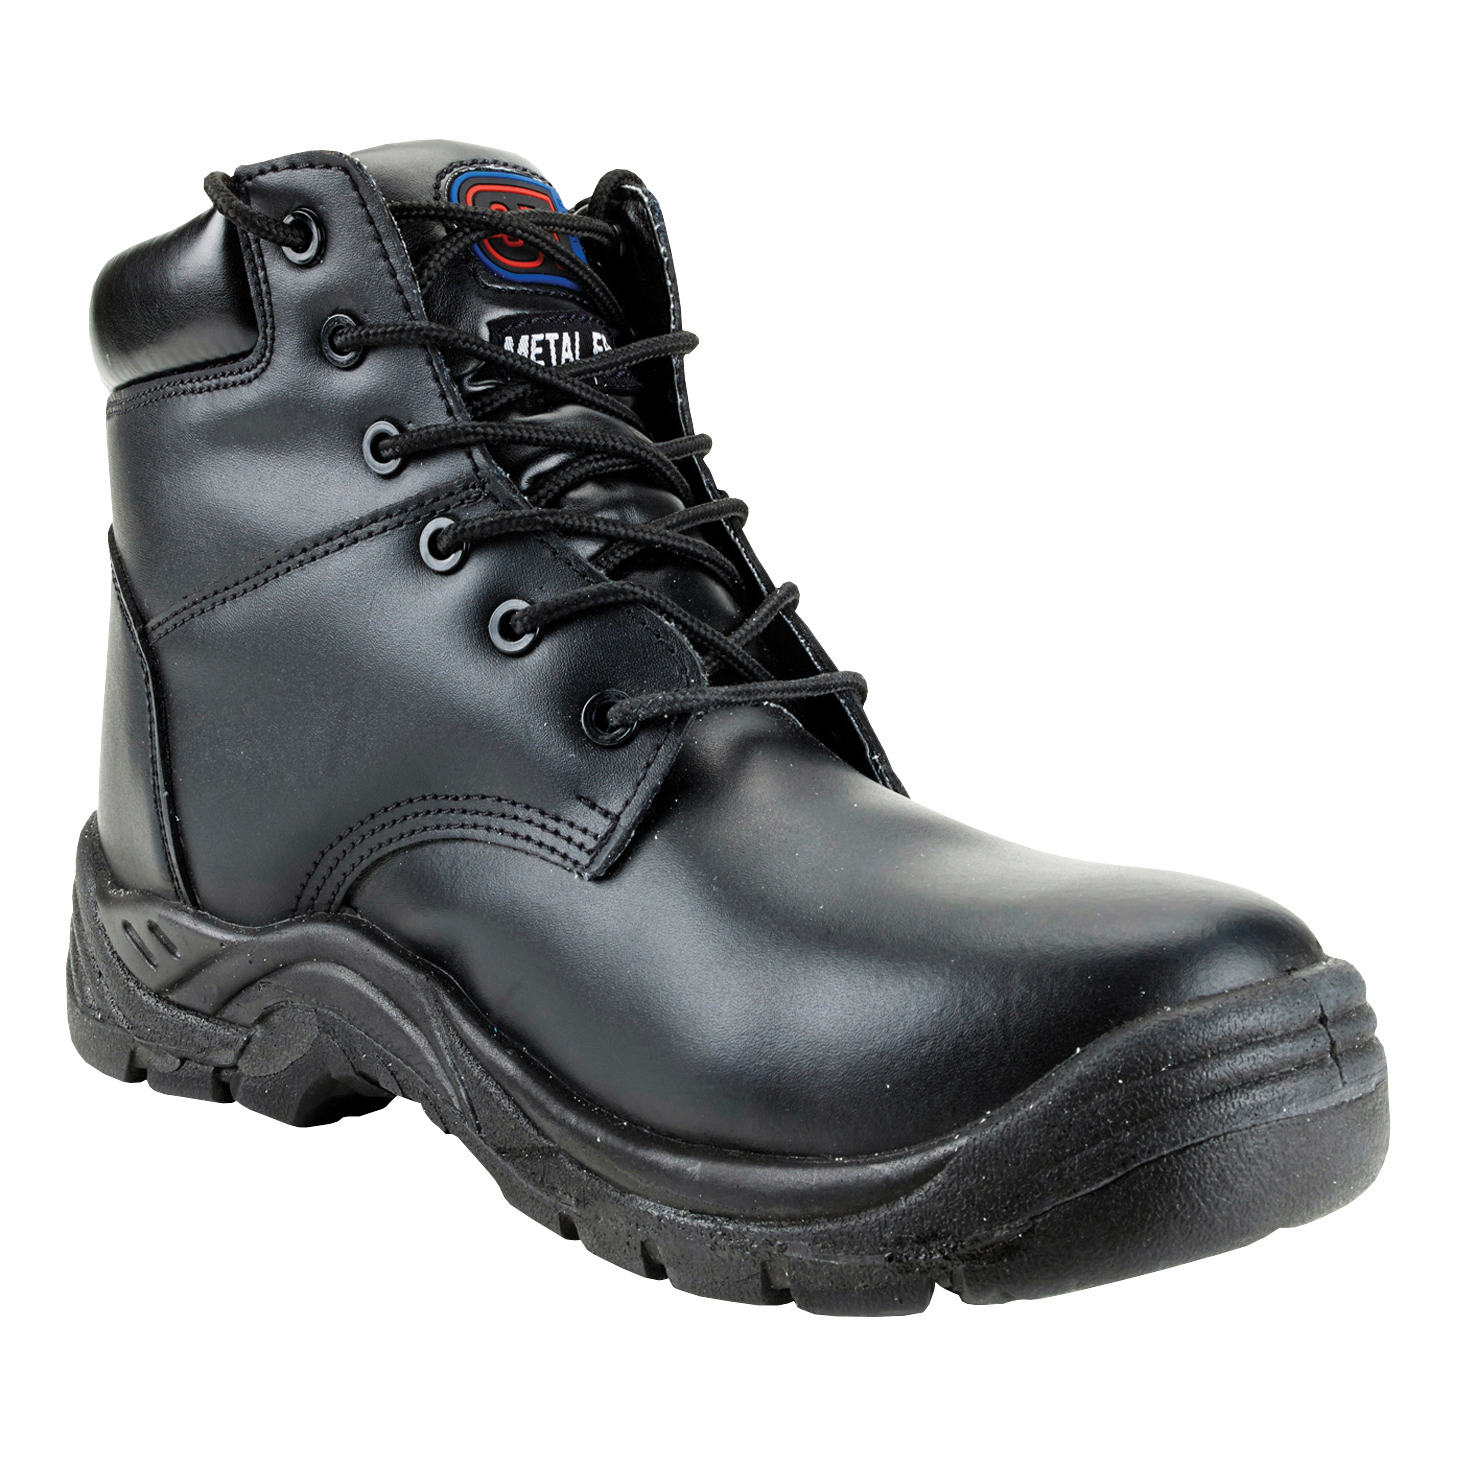 Toe Lite Boot Leather Comp Midsole Safety Toecap Metal Free Size 3 Black Approx 3 Day Leadtime